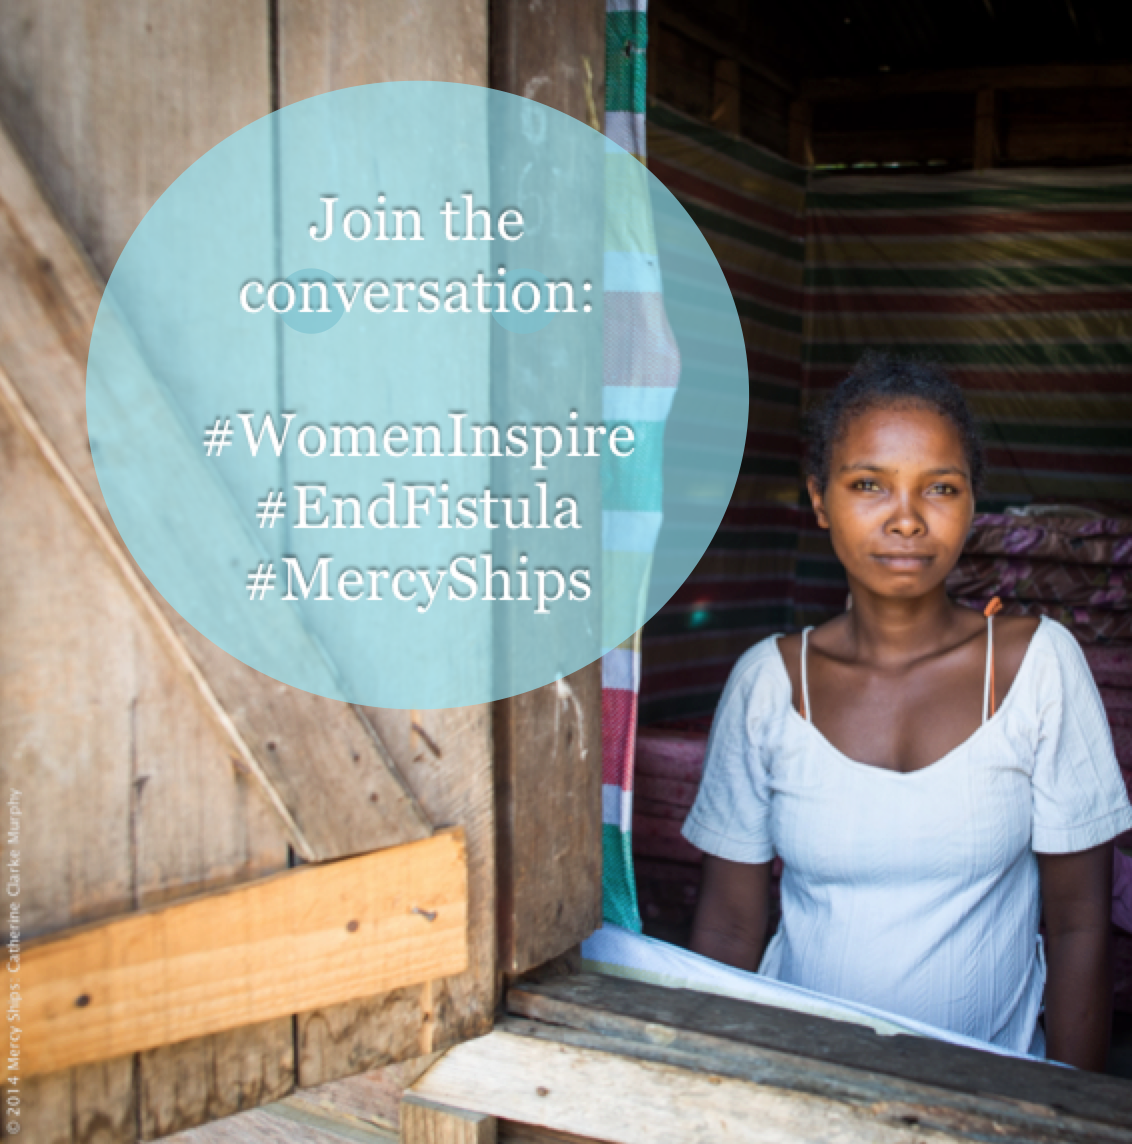 We're almost ready! Join our convo w/ @JNJGlobalHealth @Fistula_Fdtn and @DirectRelief to #EndFistula! #WomenInspire http://t.co/UEvCTR0pGe